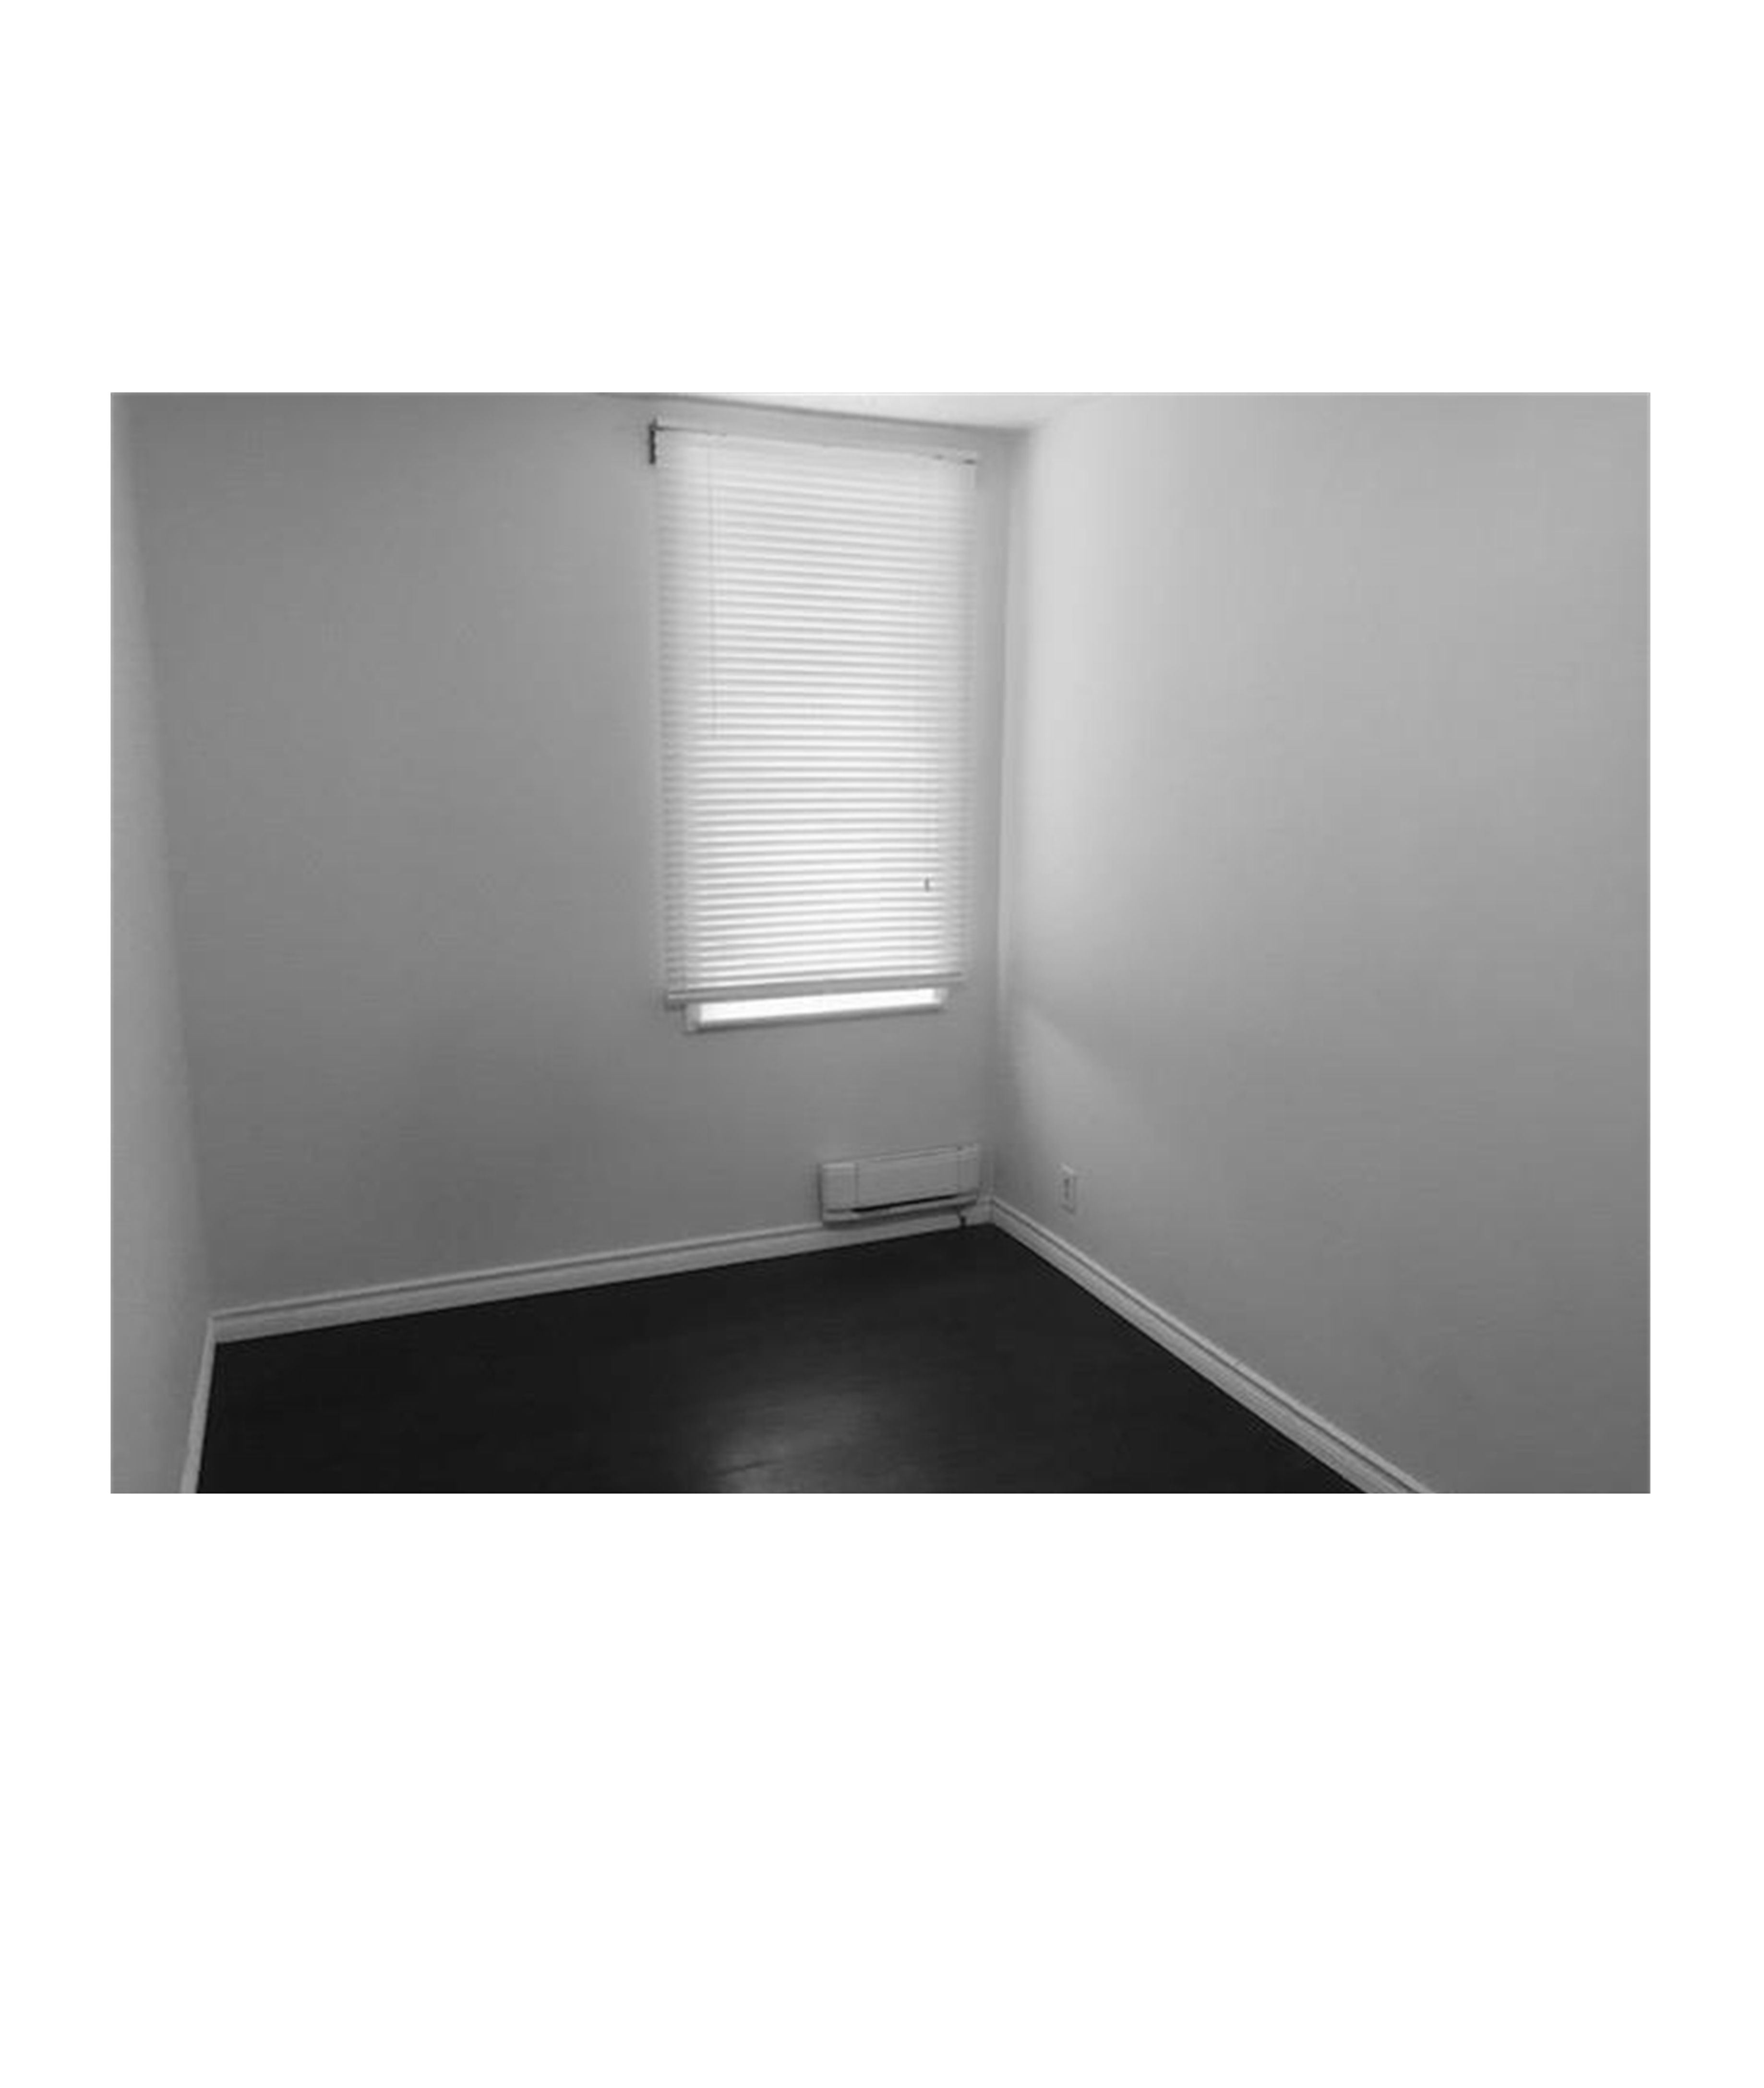 photograph of an empty room